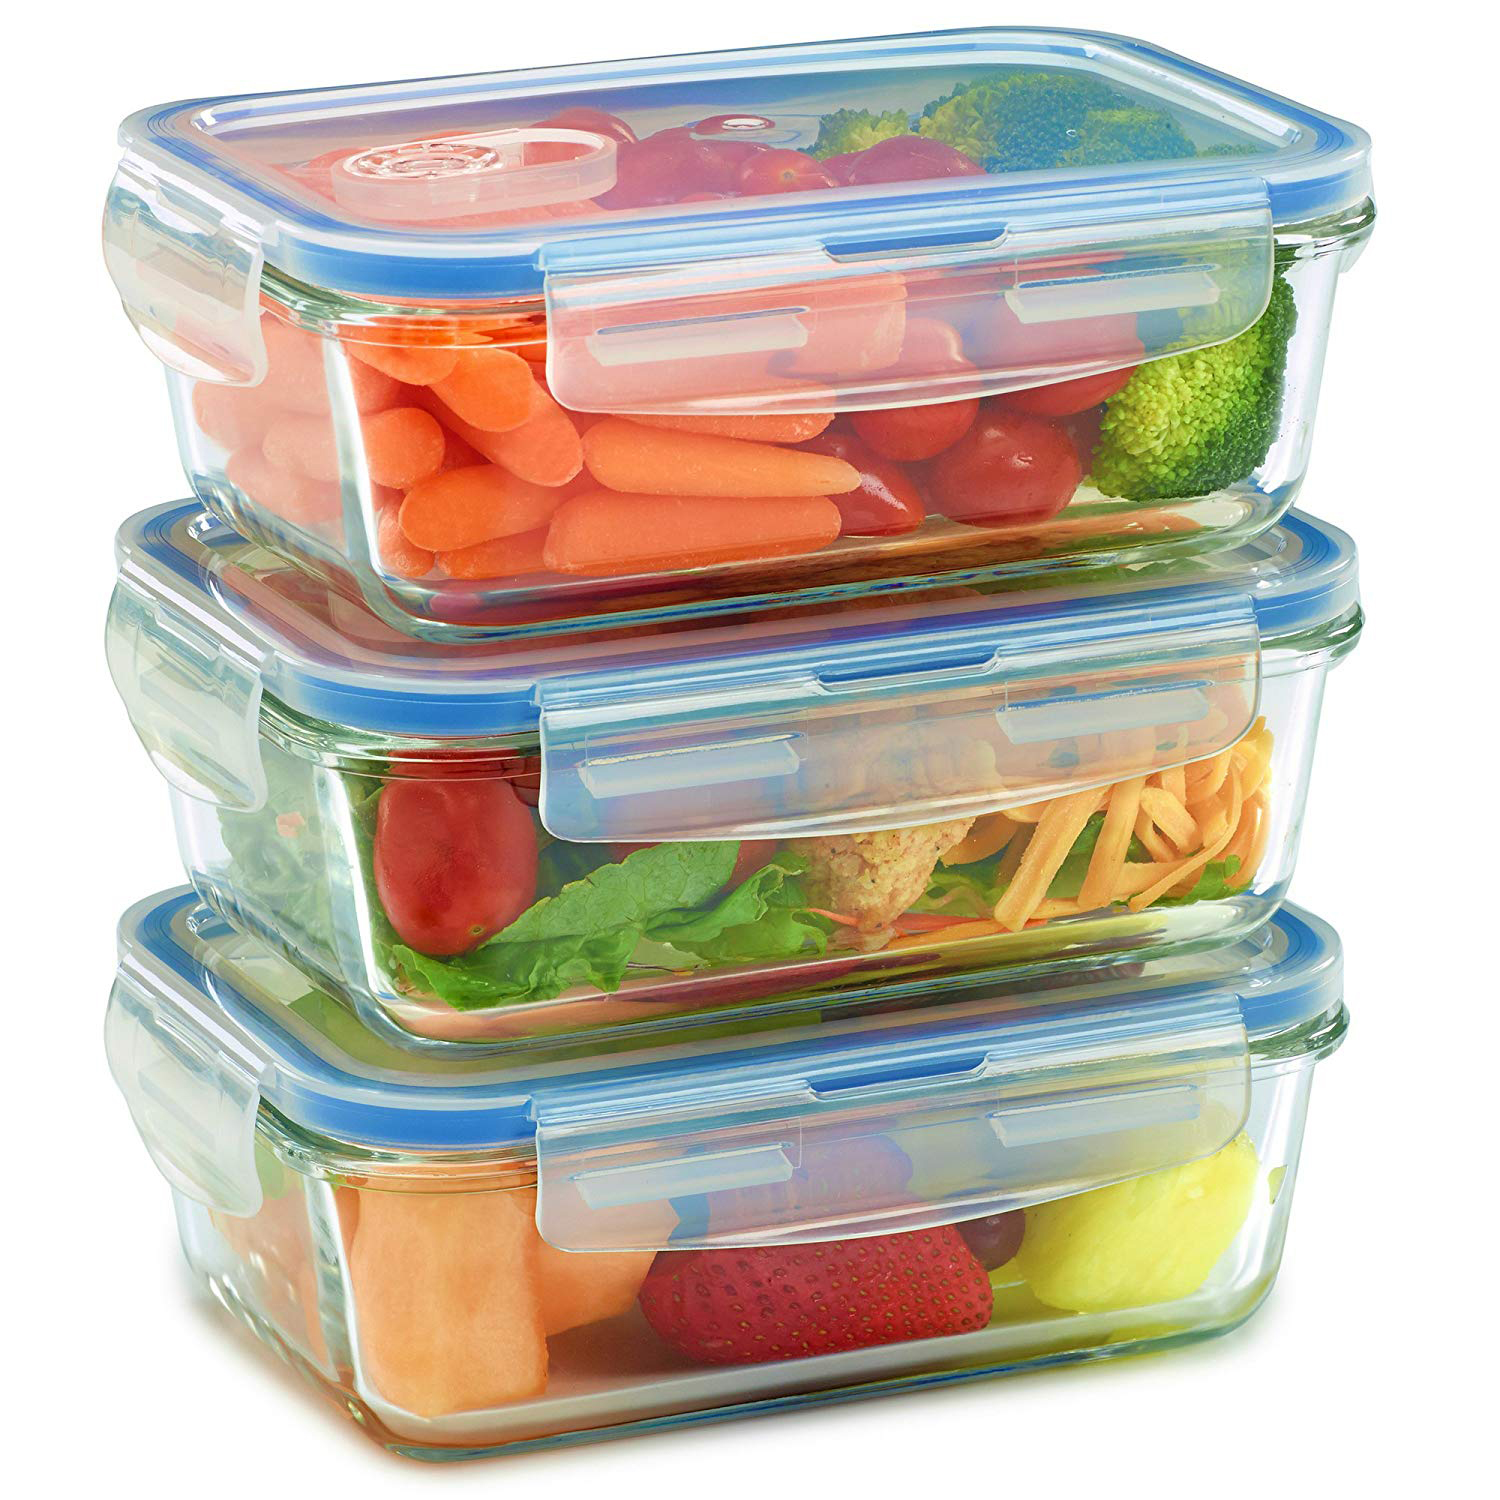 3 glass containers with plastic lids - fresh foods inside